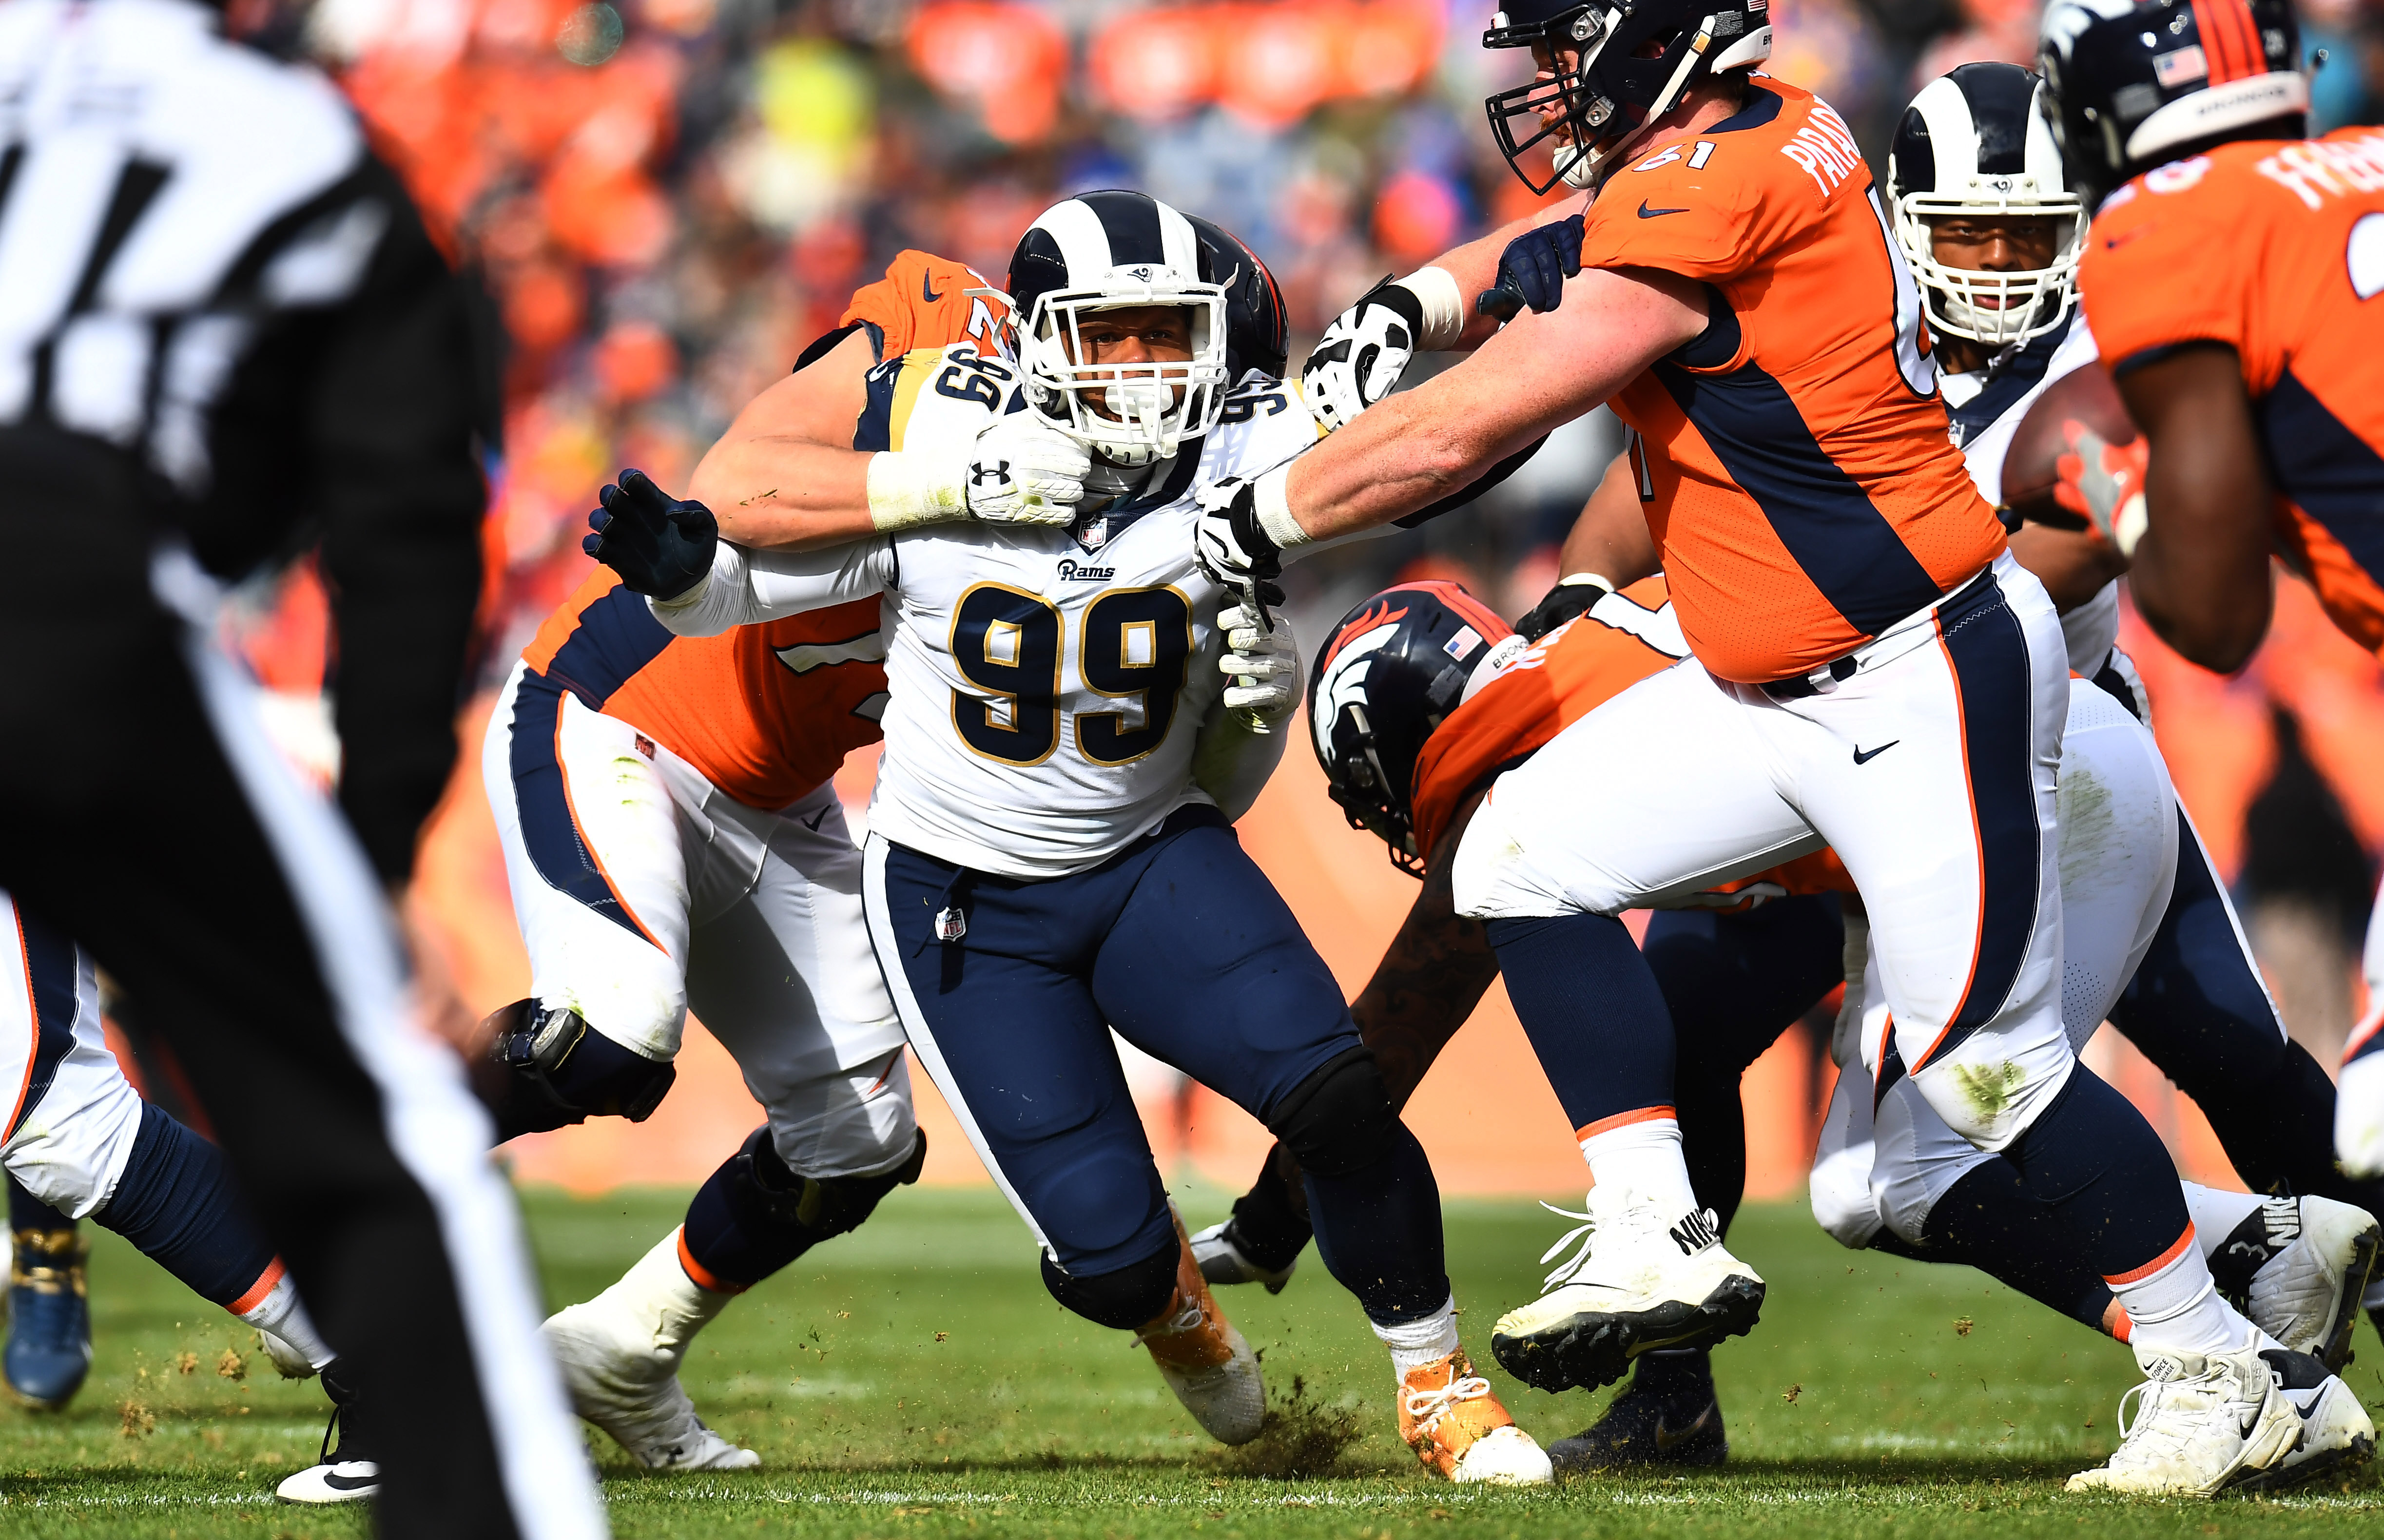 Los Angeles Rams DL Aaron Donald gets past C Matt Paradis in the second quarter of their Week 6 game, Oct. 14, 2018.